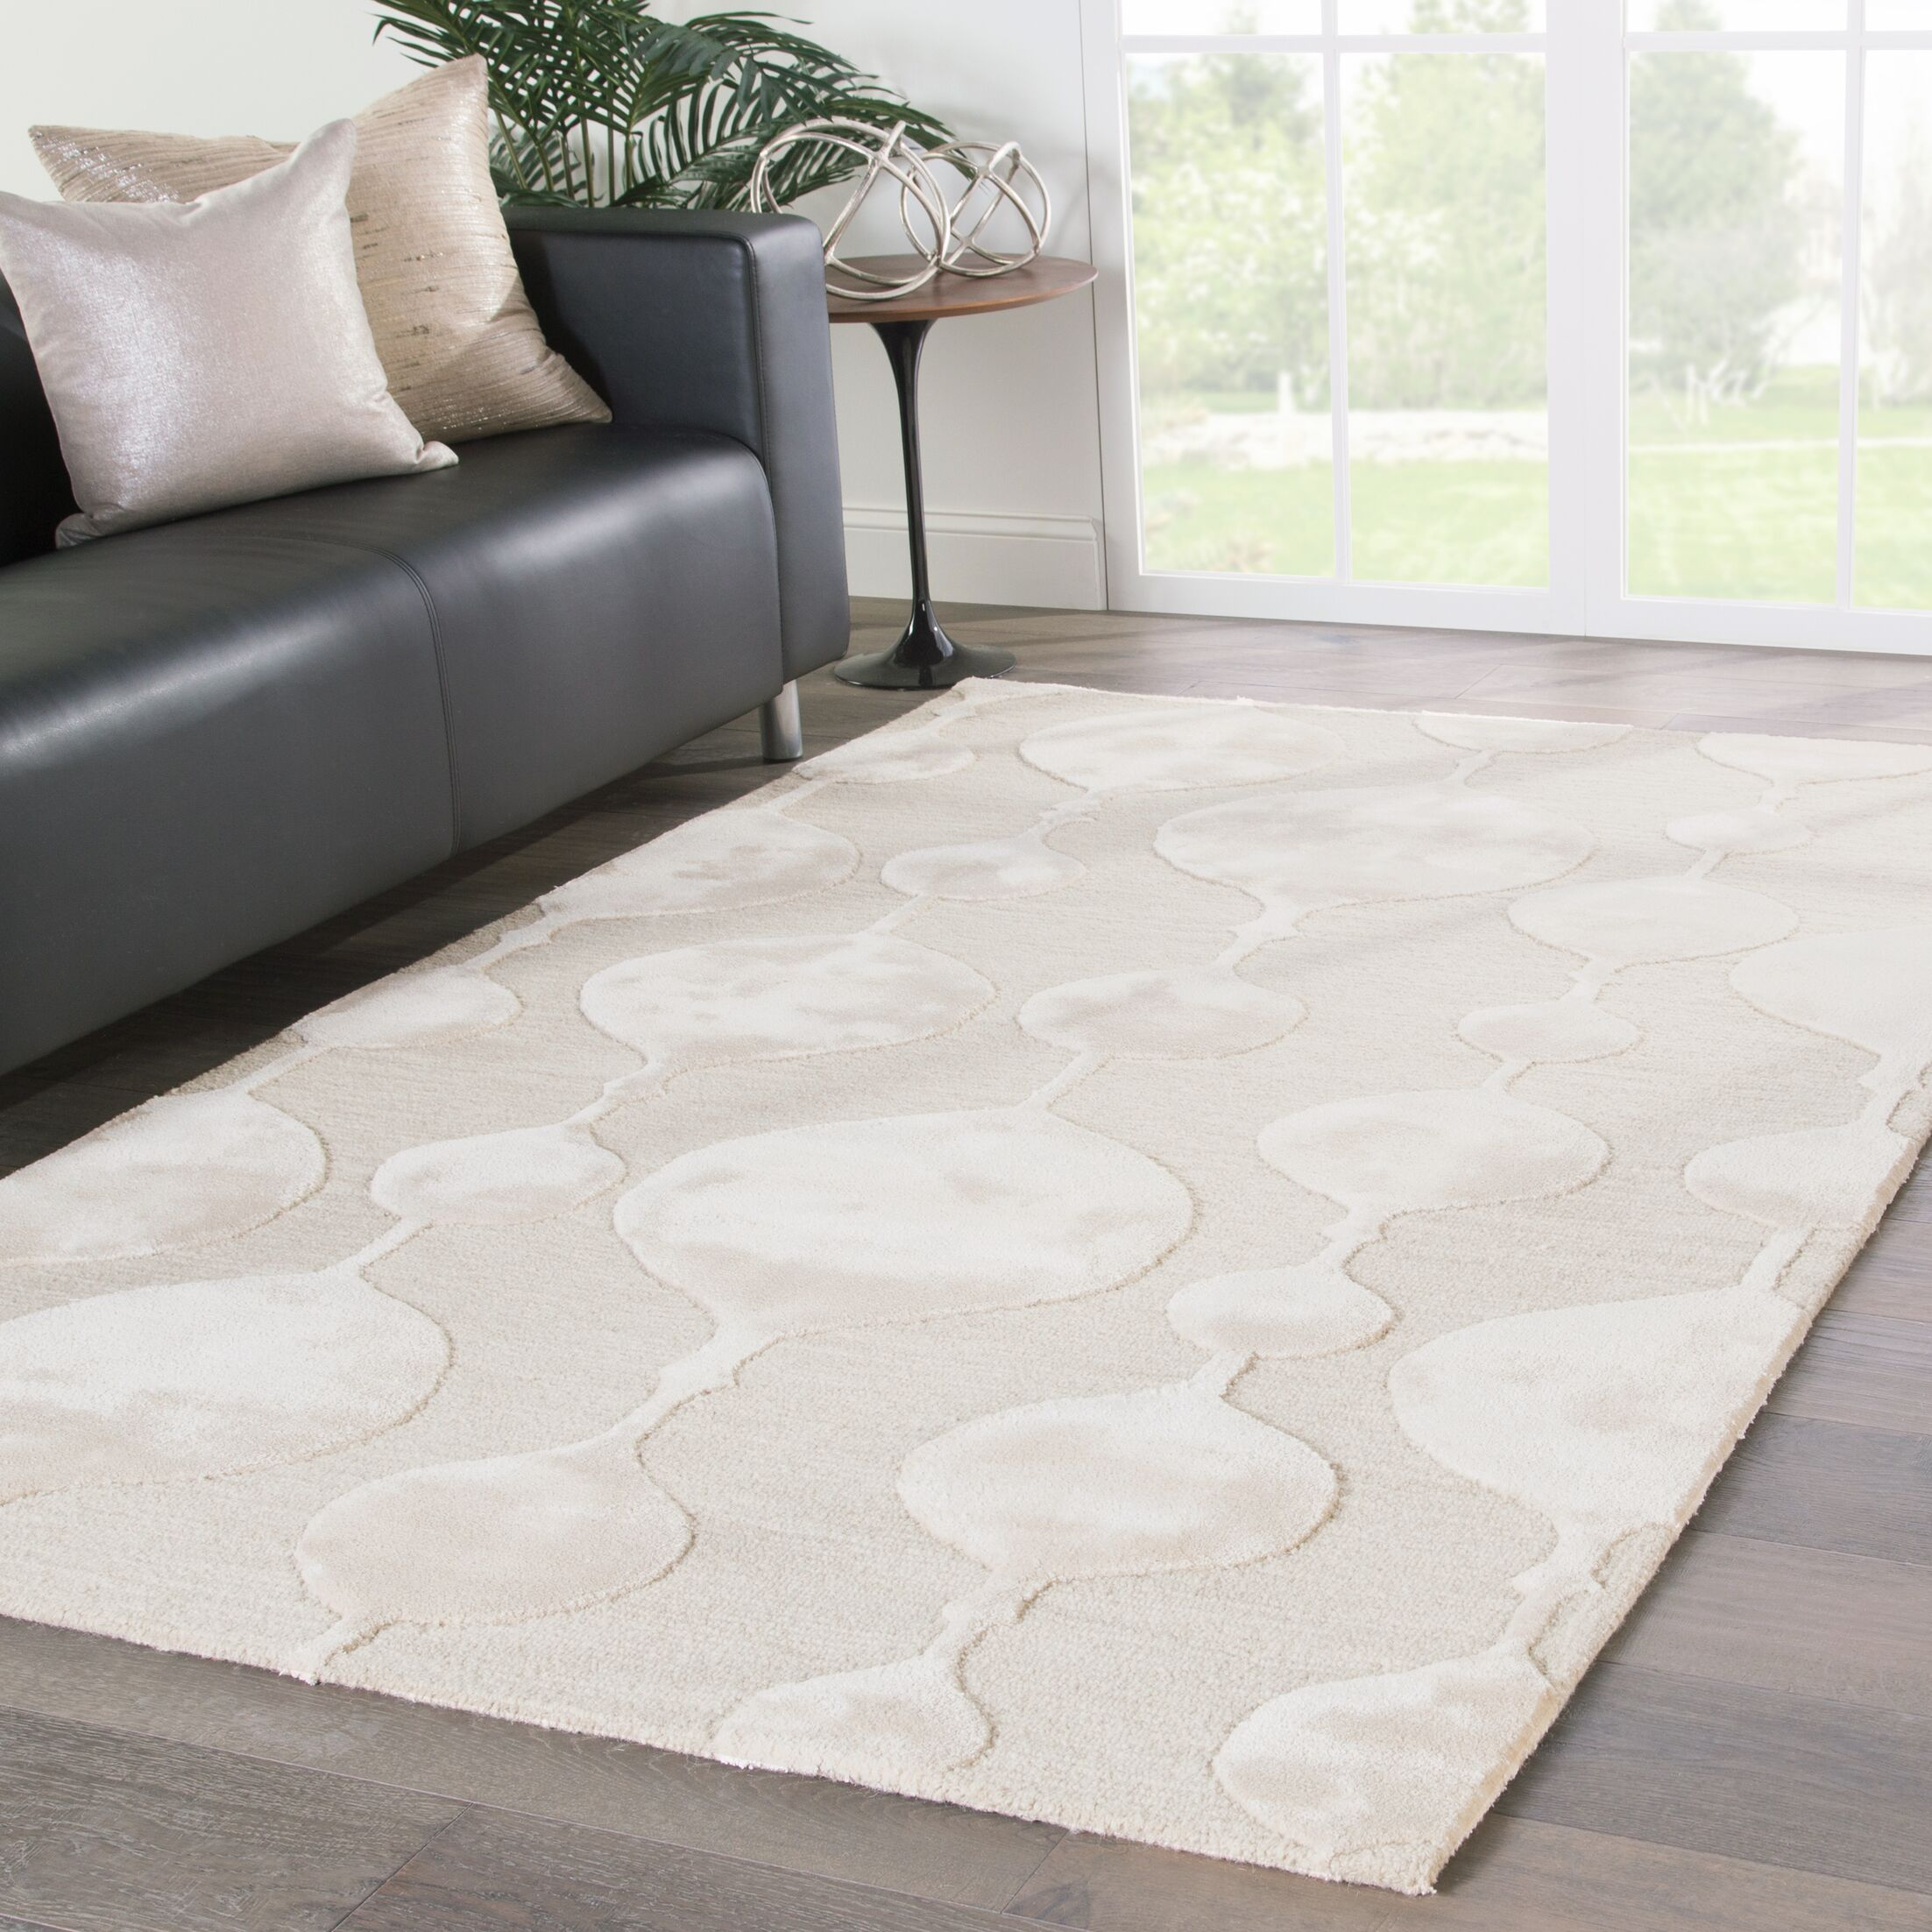 Geometric Jaipur Living Sui Hand-Tufted Beige/Cream Area Rug Rug Size: Rectangle 9' x 12'